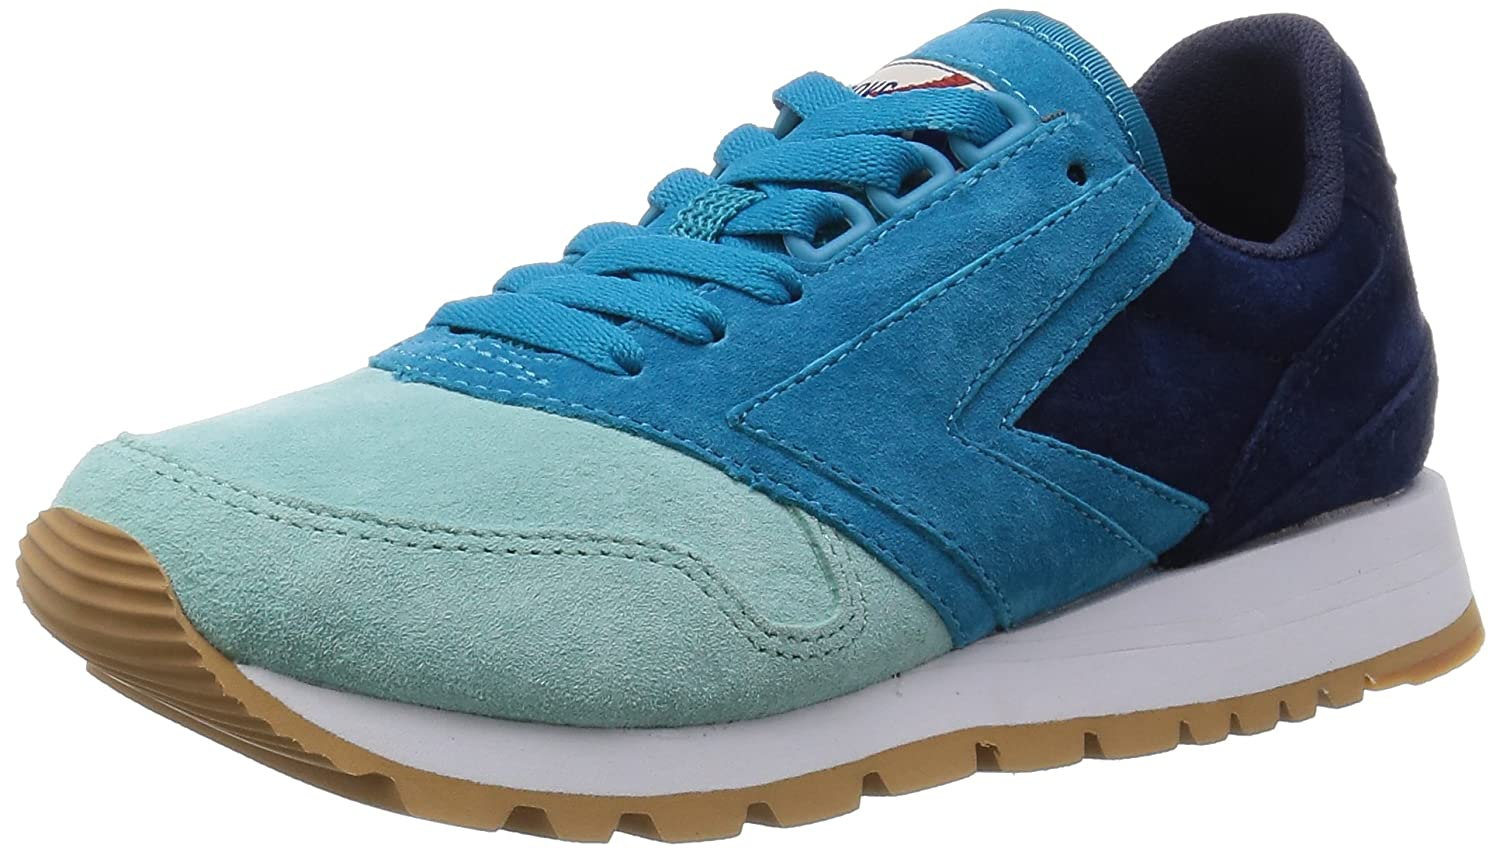 Brooks Women's Chariot B01DEJW38U 6.5 B(M) US|Patriot Blue/Blue Light/Capri Breeze